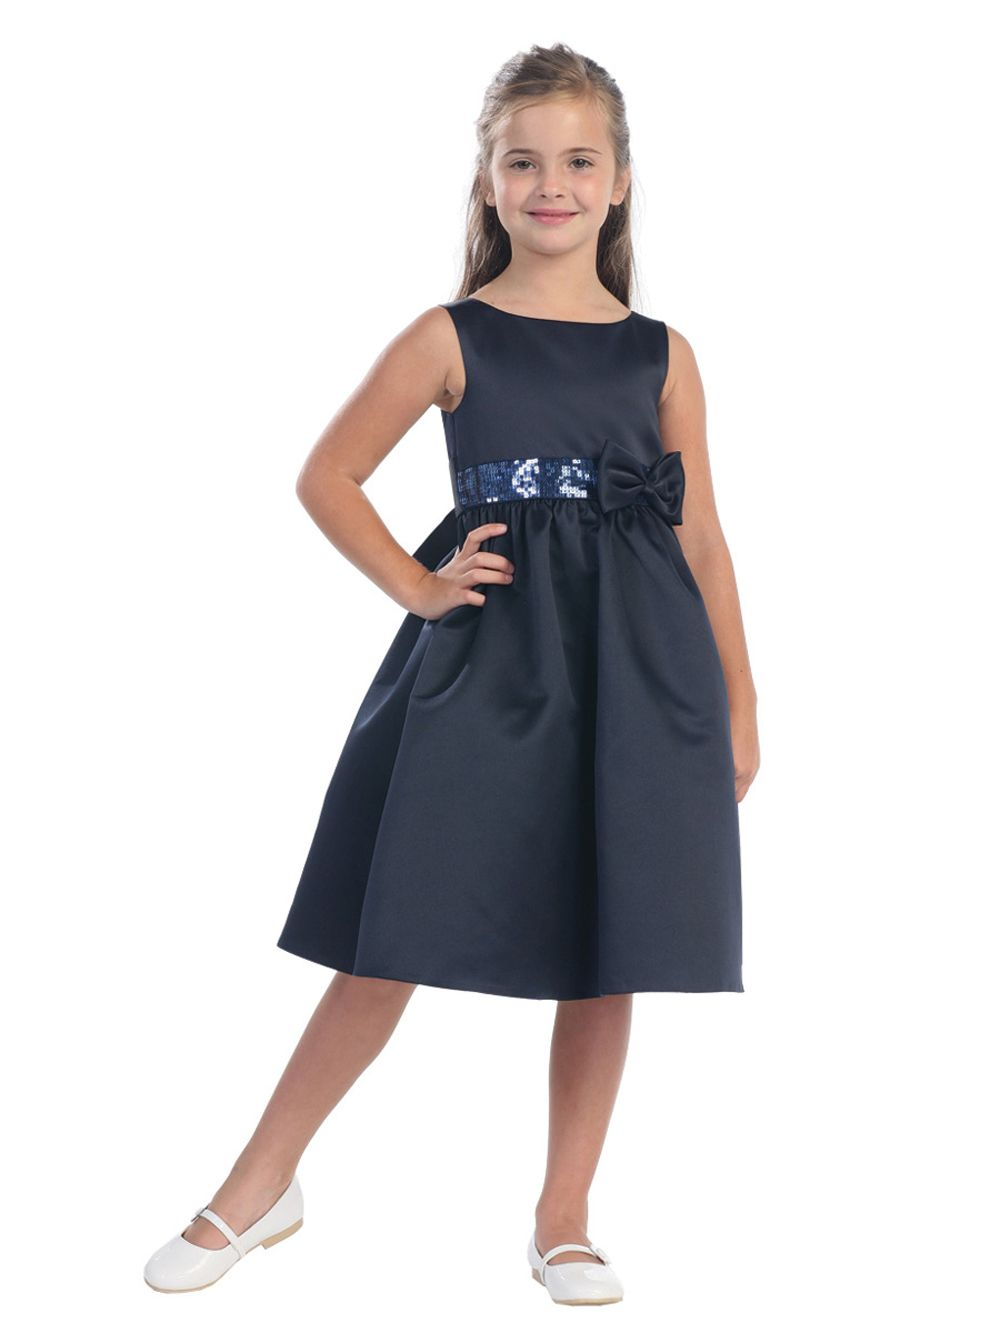 Navy blue childrens bridesmaid dresses gallery braidsmaid dress junior bridesmaid dresses chiffon junior bridesmaid dresses navy beautiful sequins waist satin flower girl dress sizes ombrellifo Image collections